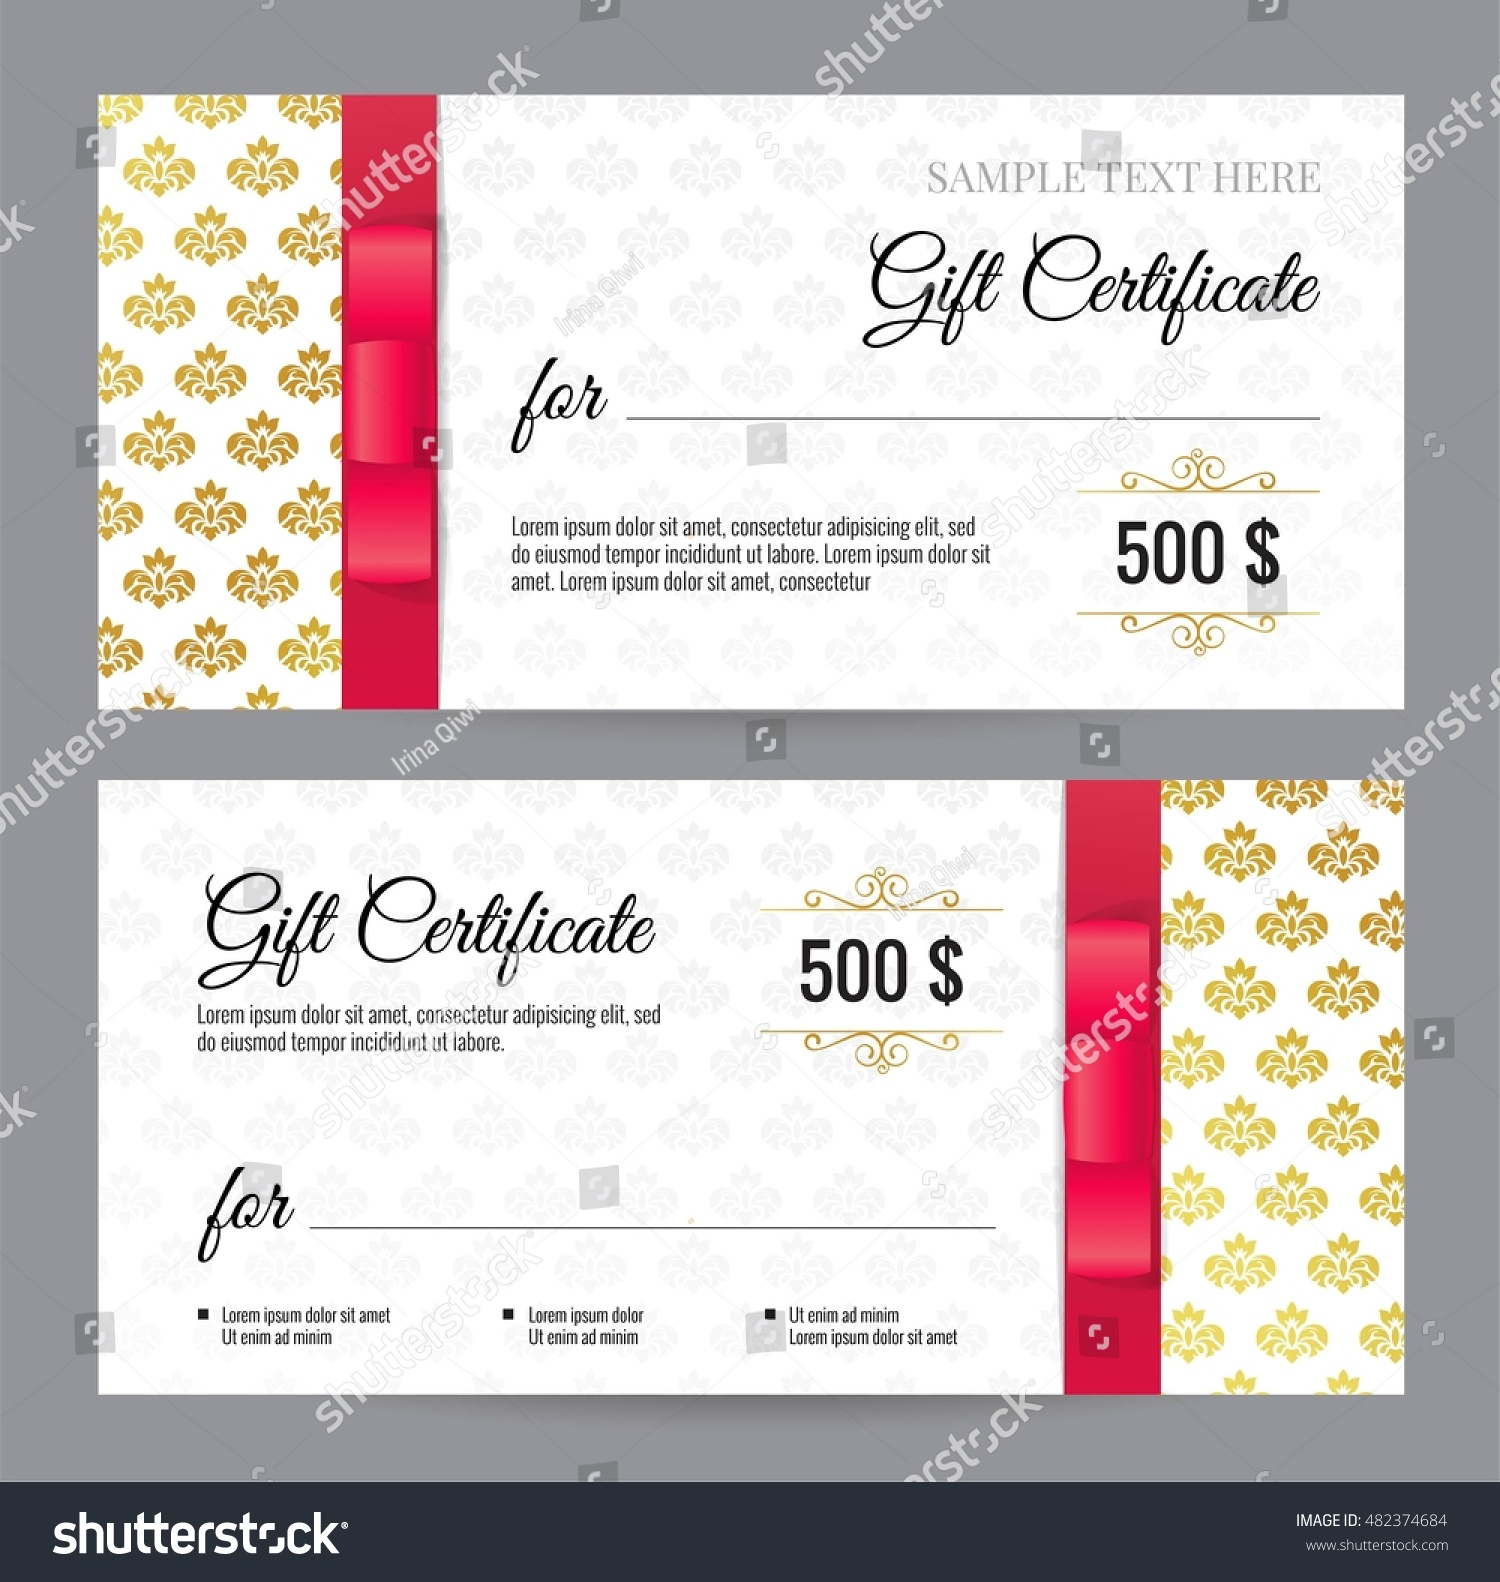 Gift Voucher Template Floral Pattern Red Stock Vector Royalty Free